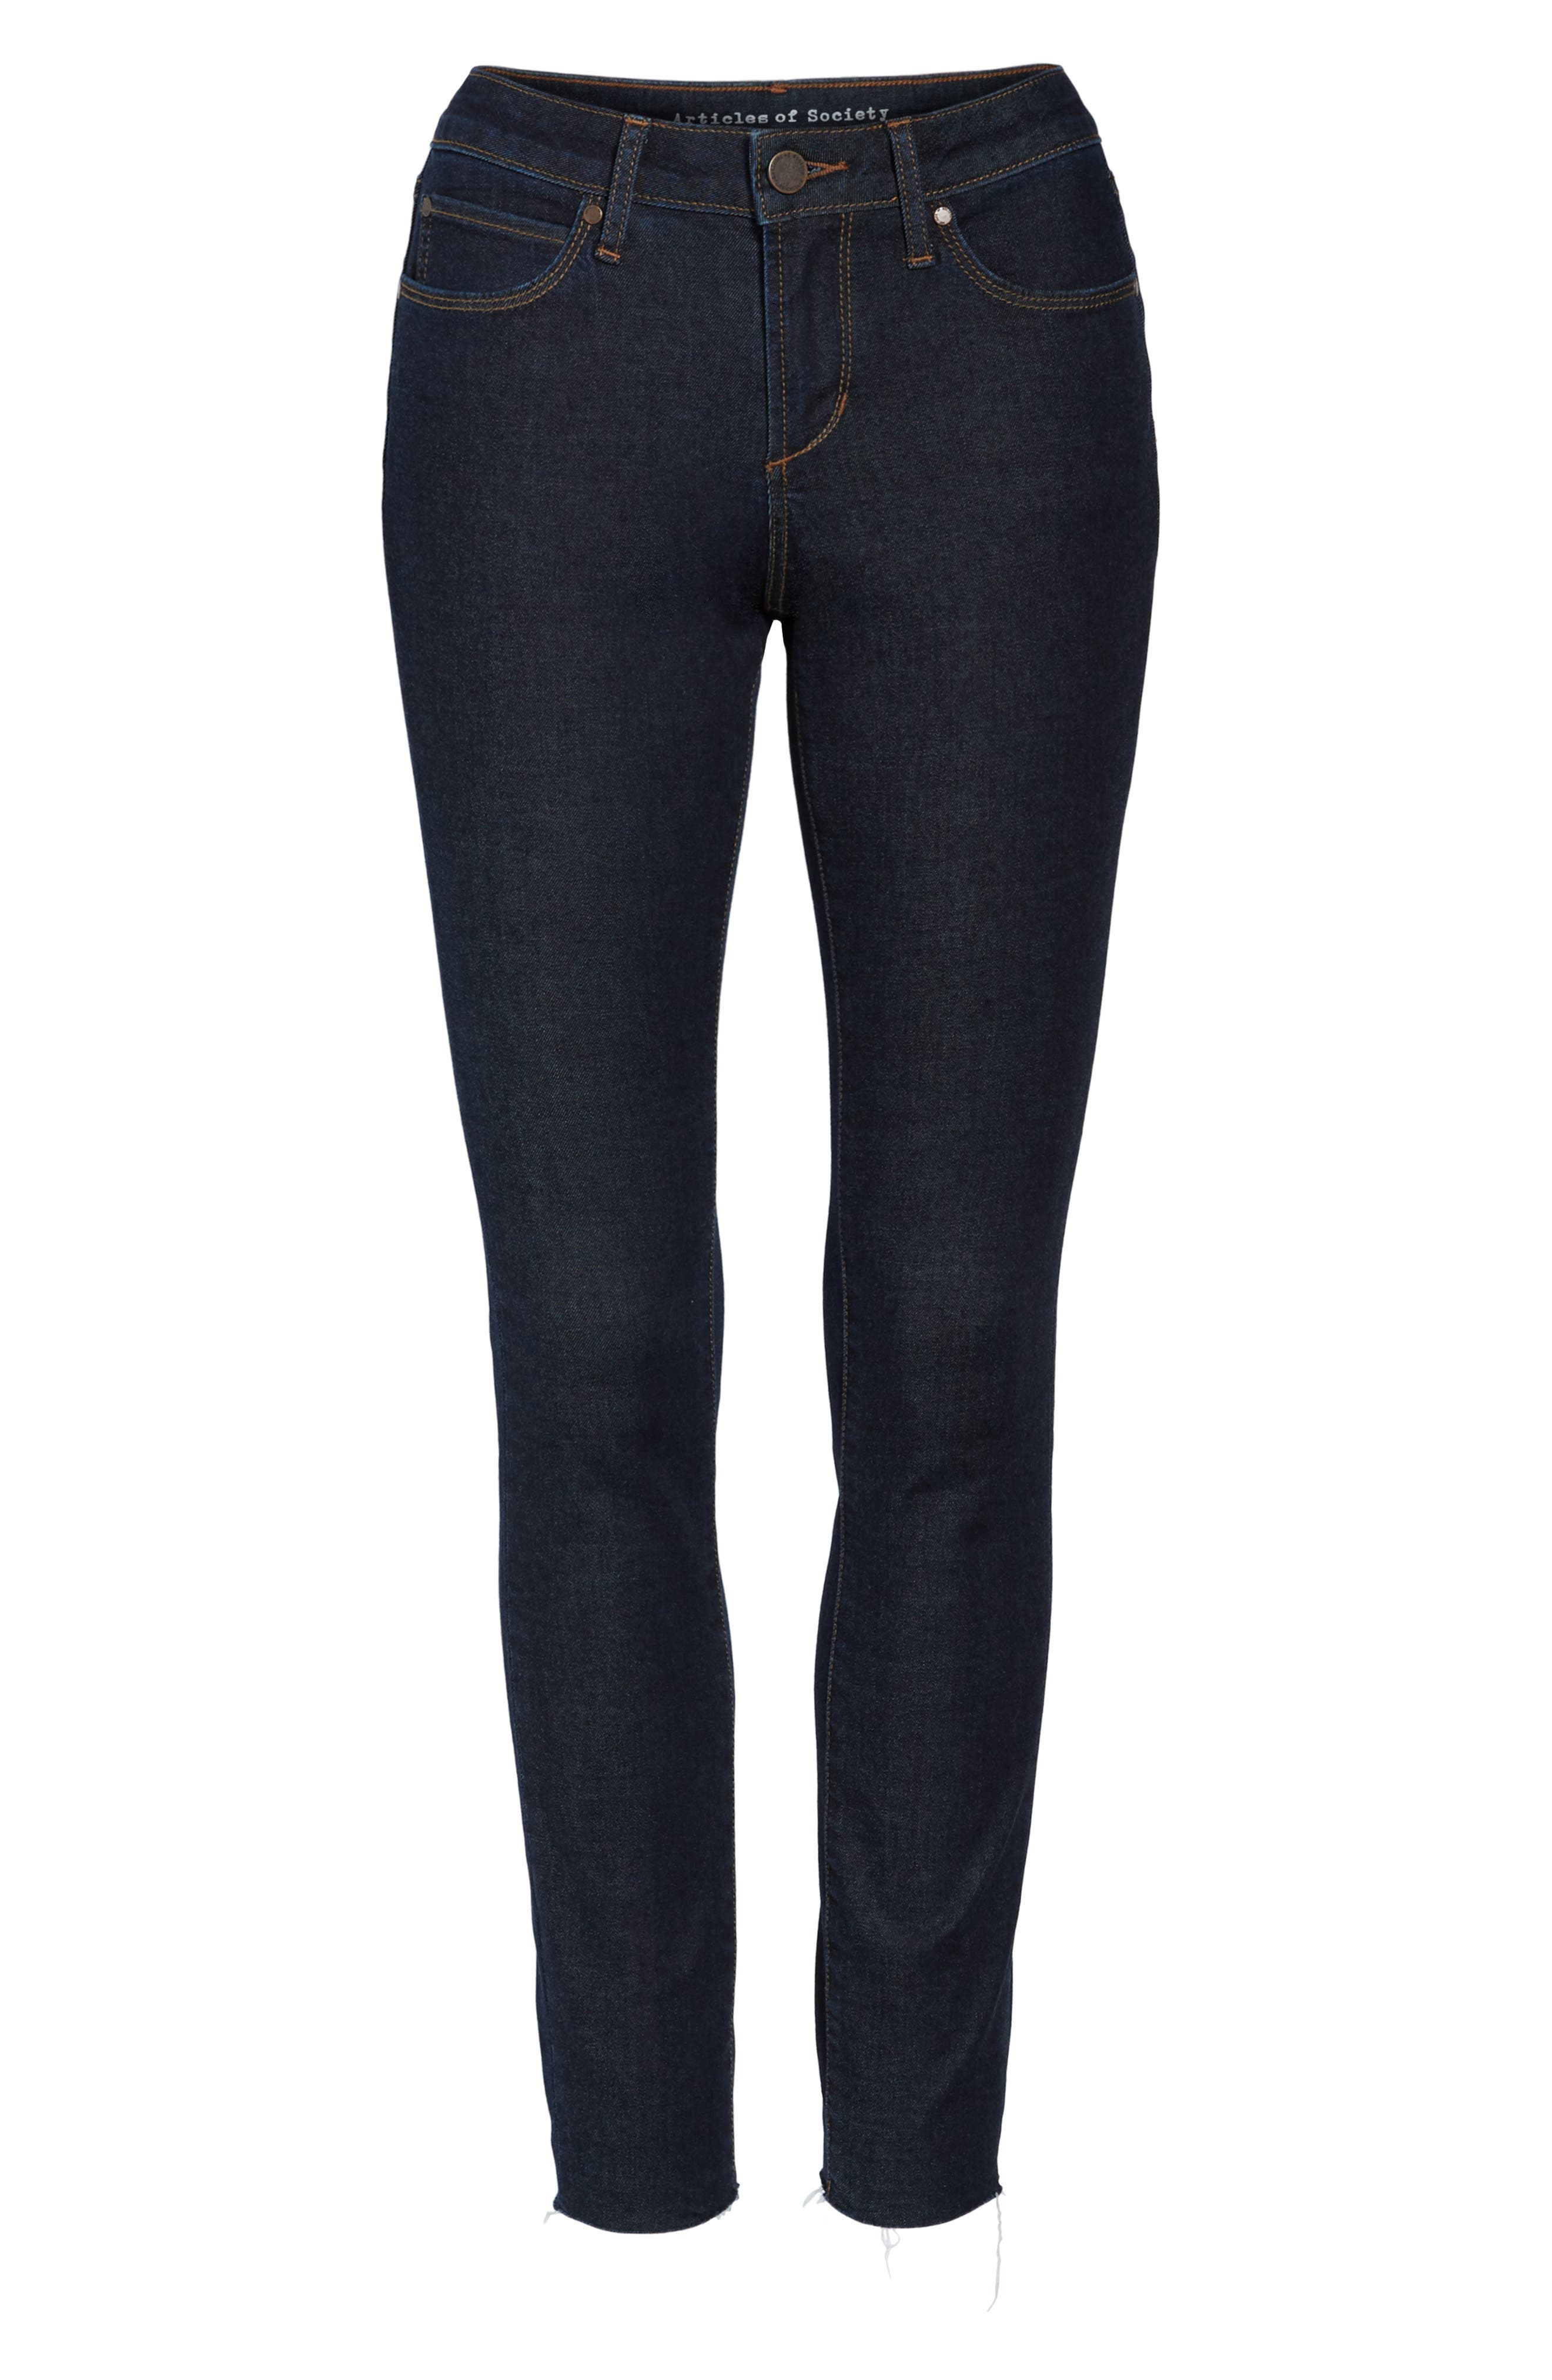 Sarah Ankle Skinny Jeans,                             Alternate thumbnail 6, color,                             495